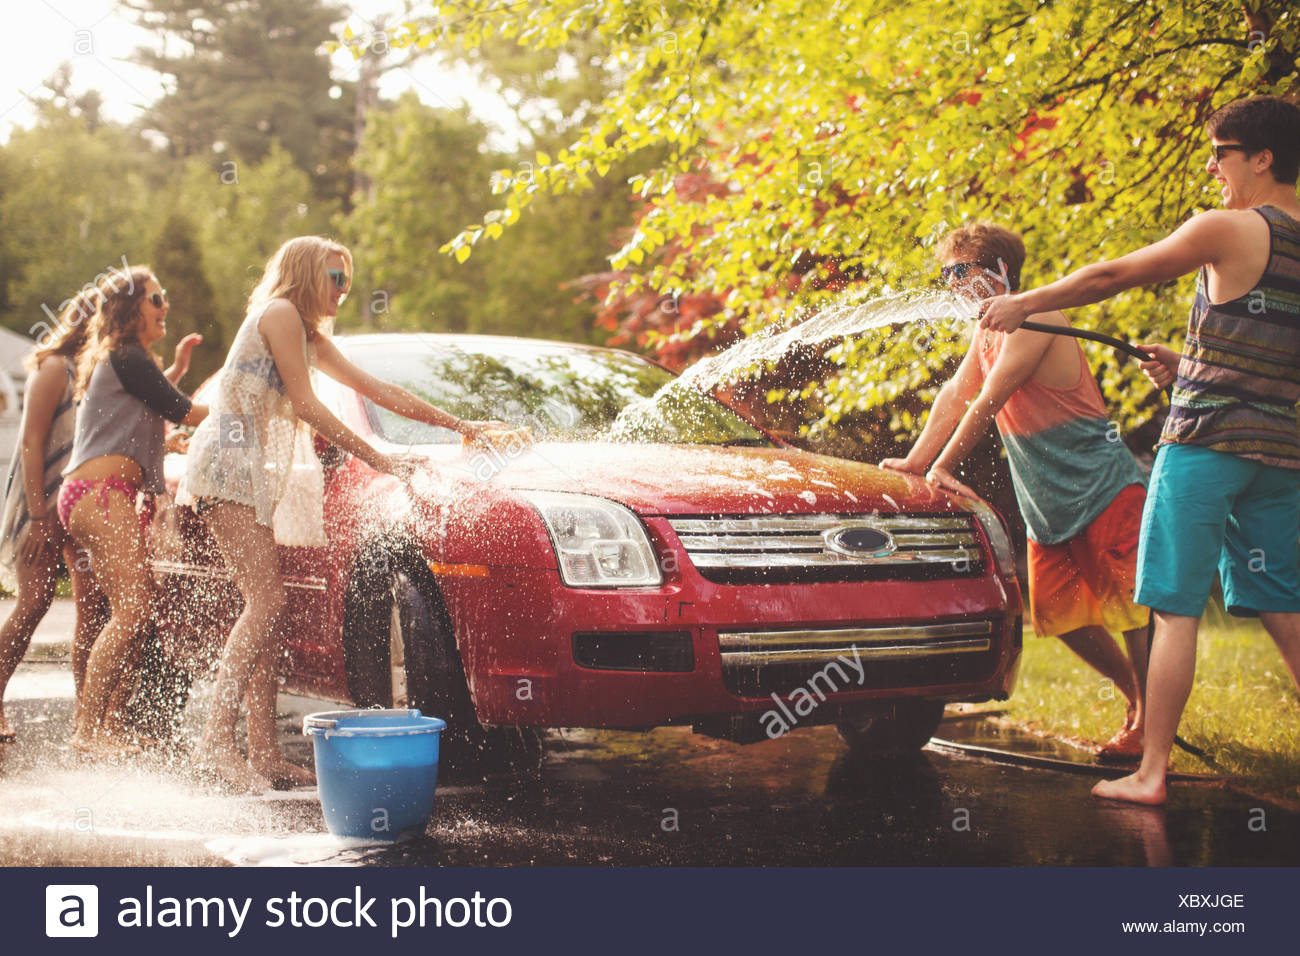 Five friends spraying car with hosepipe - Stock Image